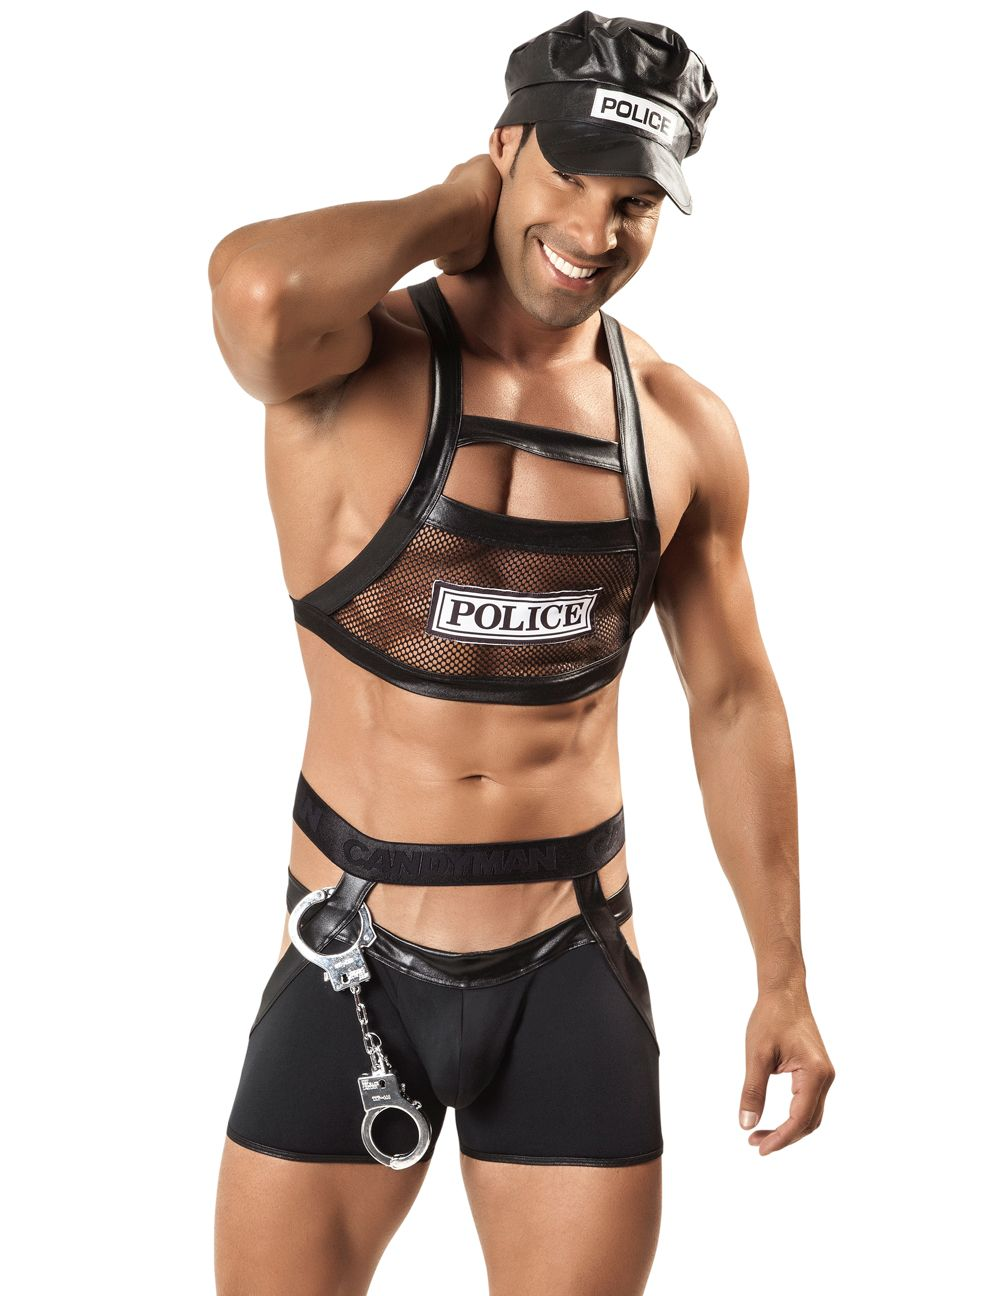 Male underwear model wearing CandyMan 99152 Police Outfit available at www.MensUnderwear.io